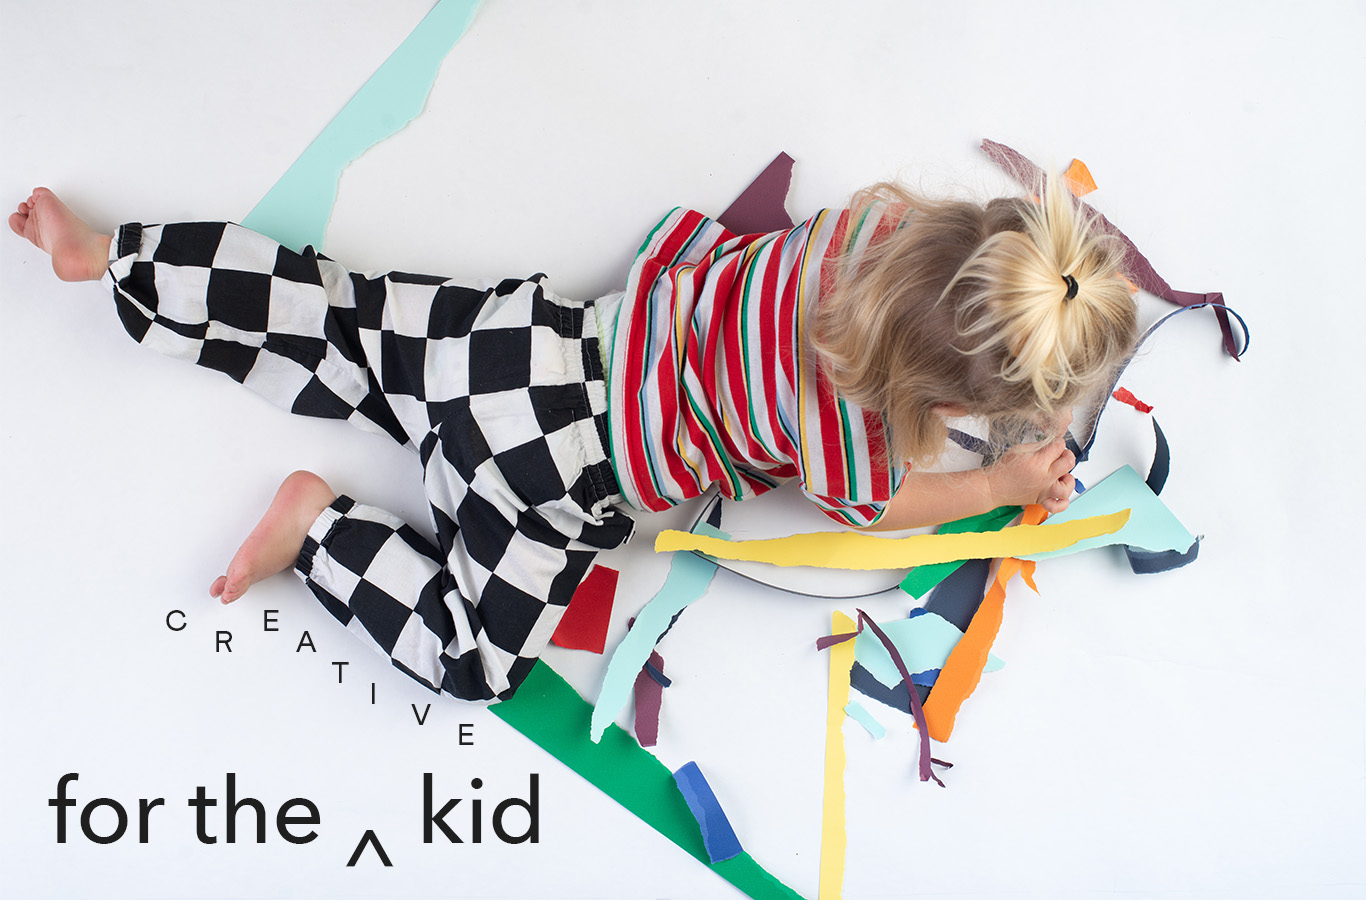 FOR THE CREATIVE KID new font.jpg